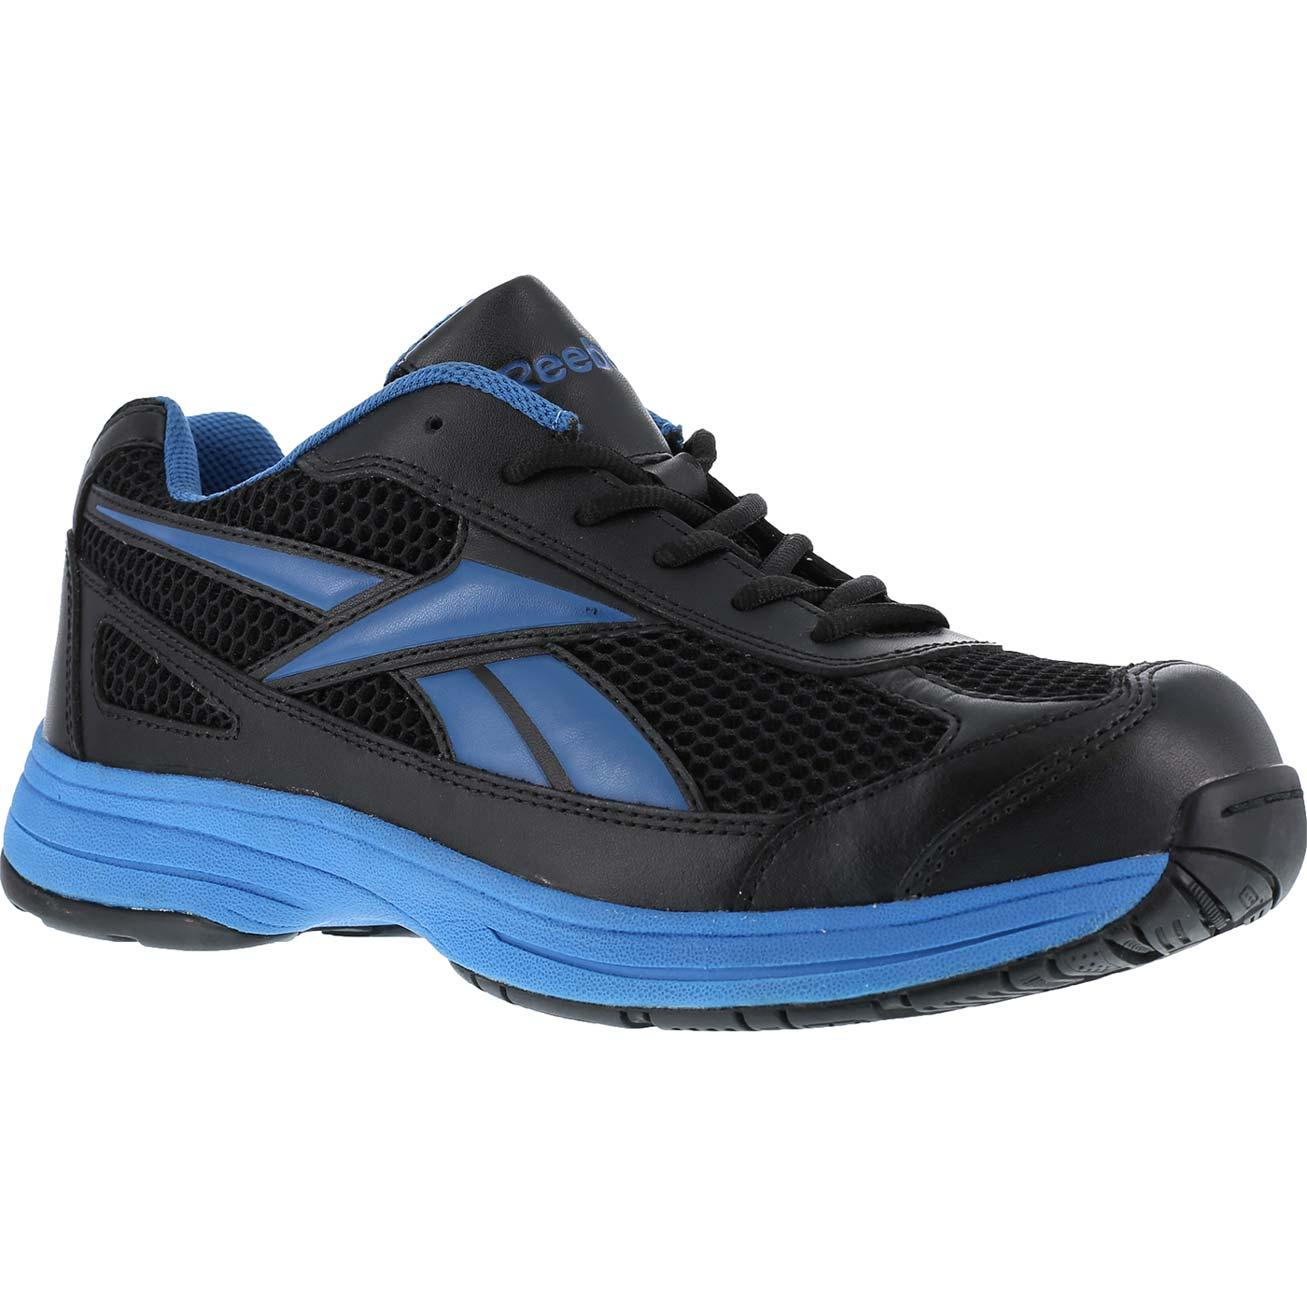 Lee High Shoes